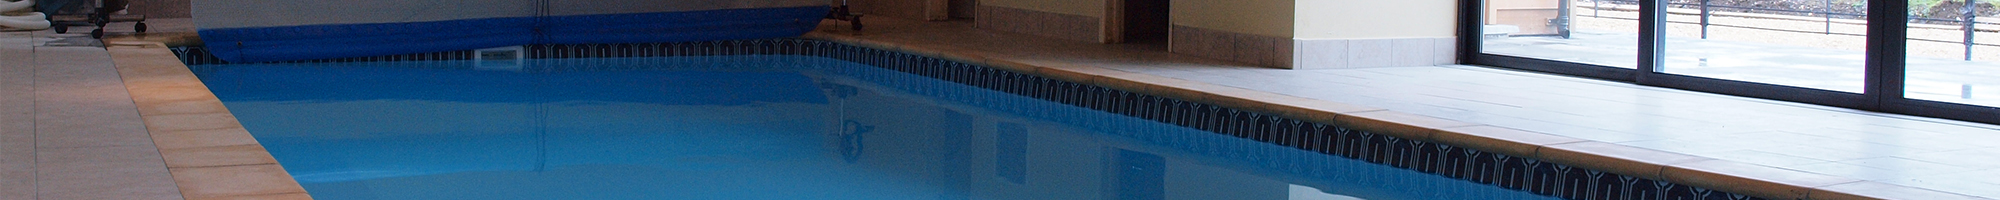 Pool Builder North Devon